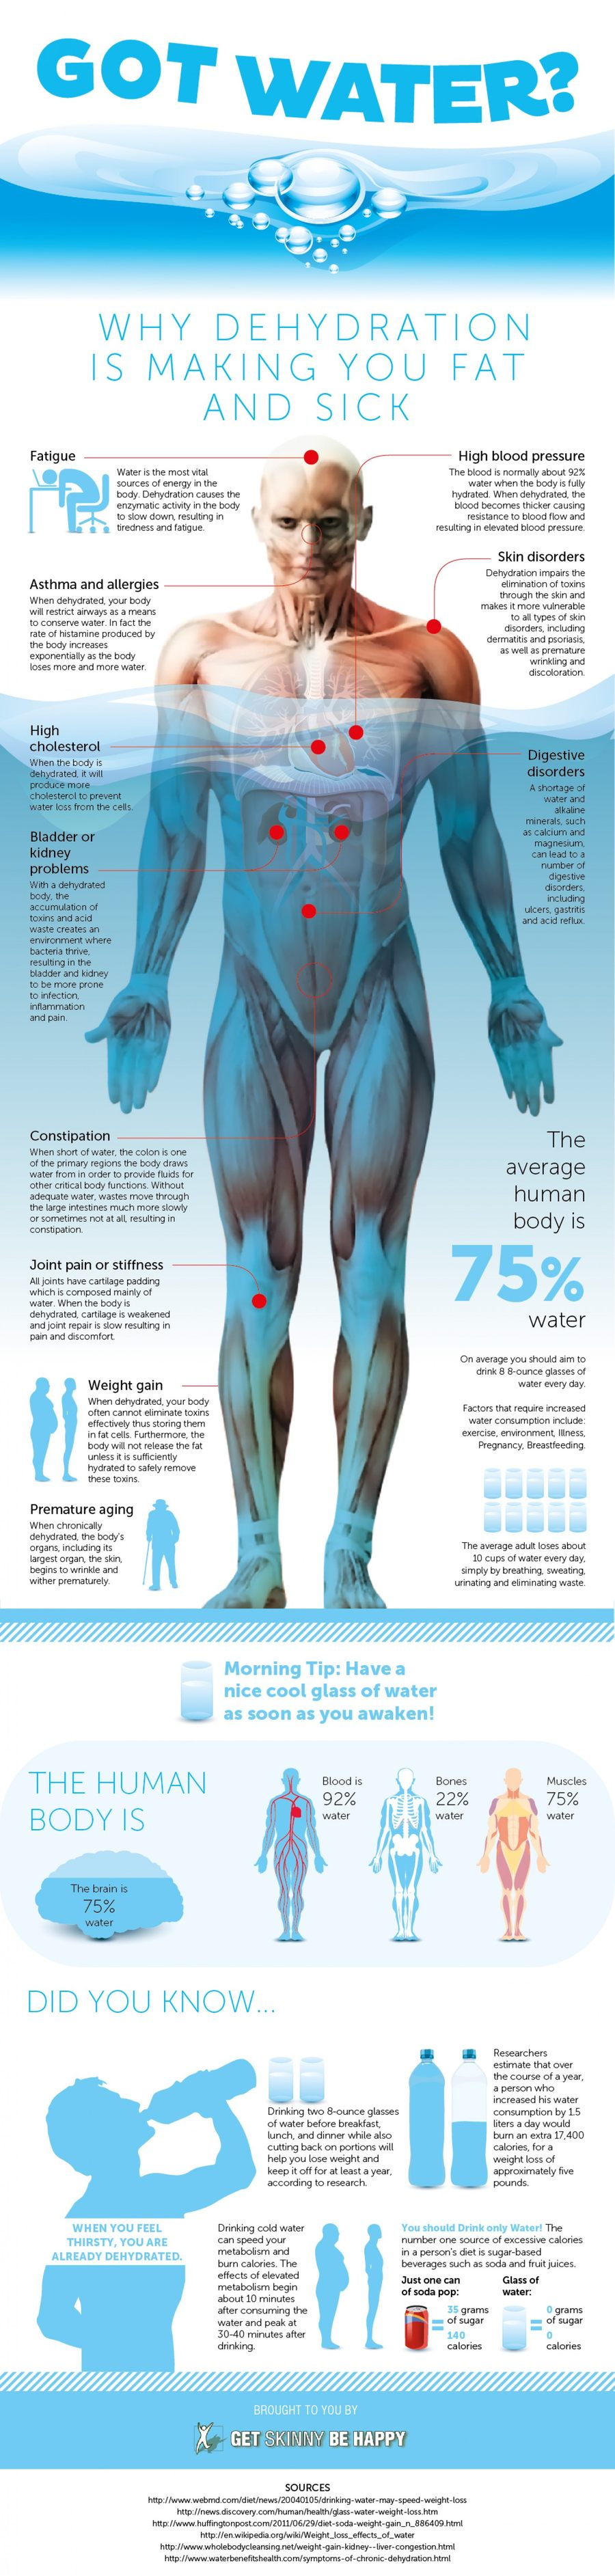 got water why dehydration is making you fat and sick infographic